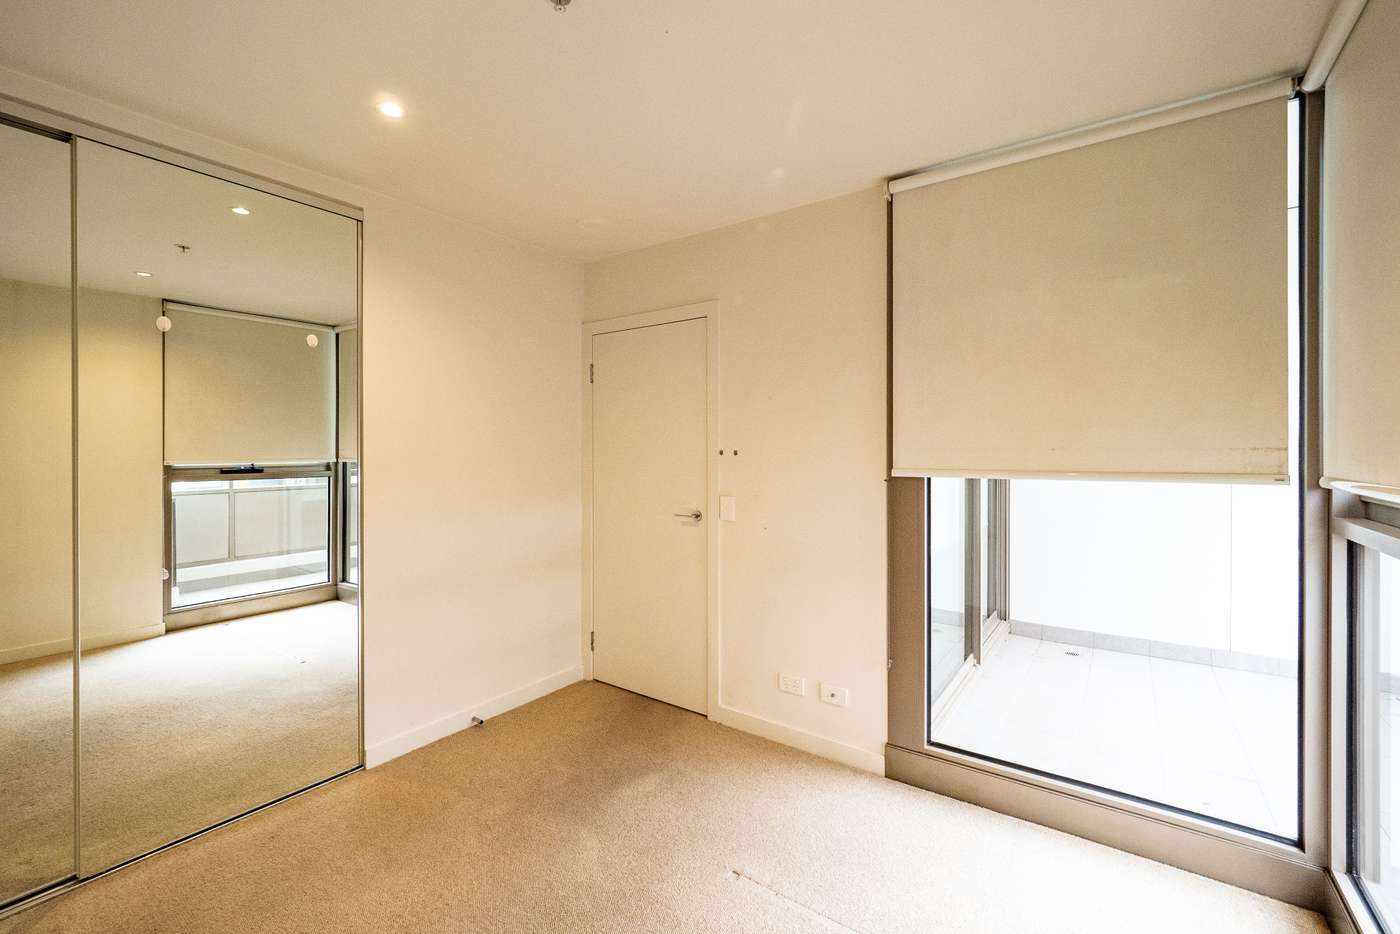 Seventh view of Homely apartment listing, 107/15 Bond Street, Caulfield VIC 3162